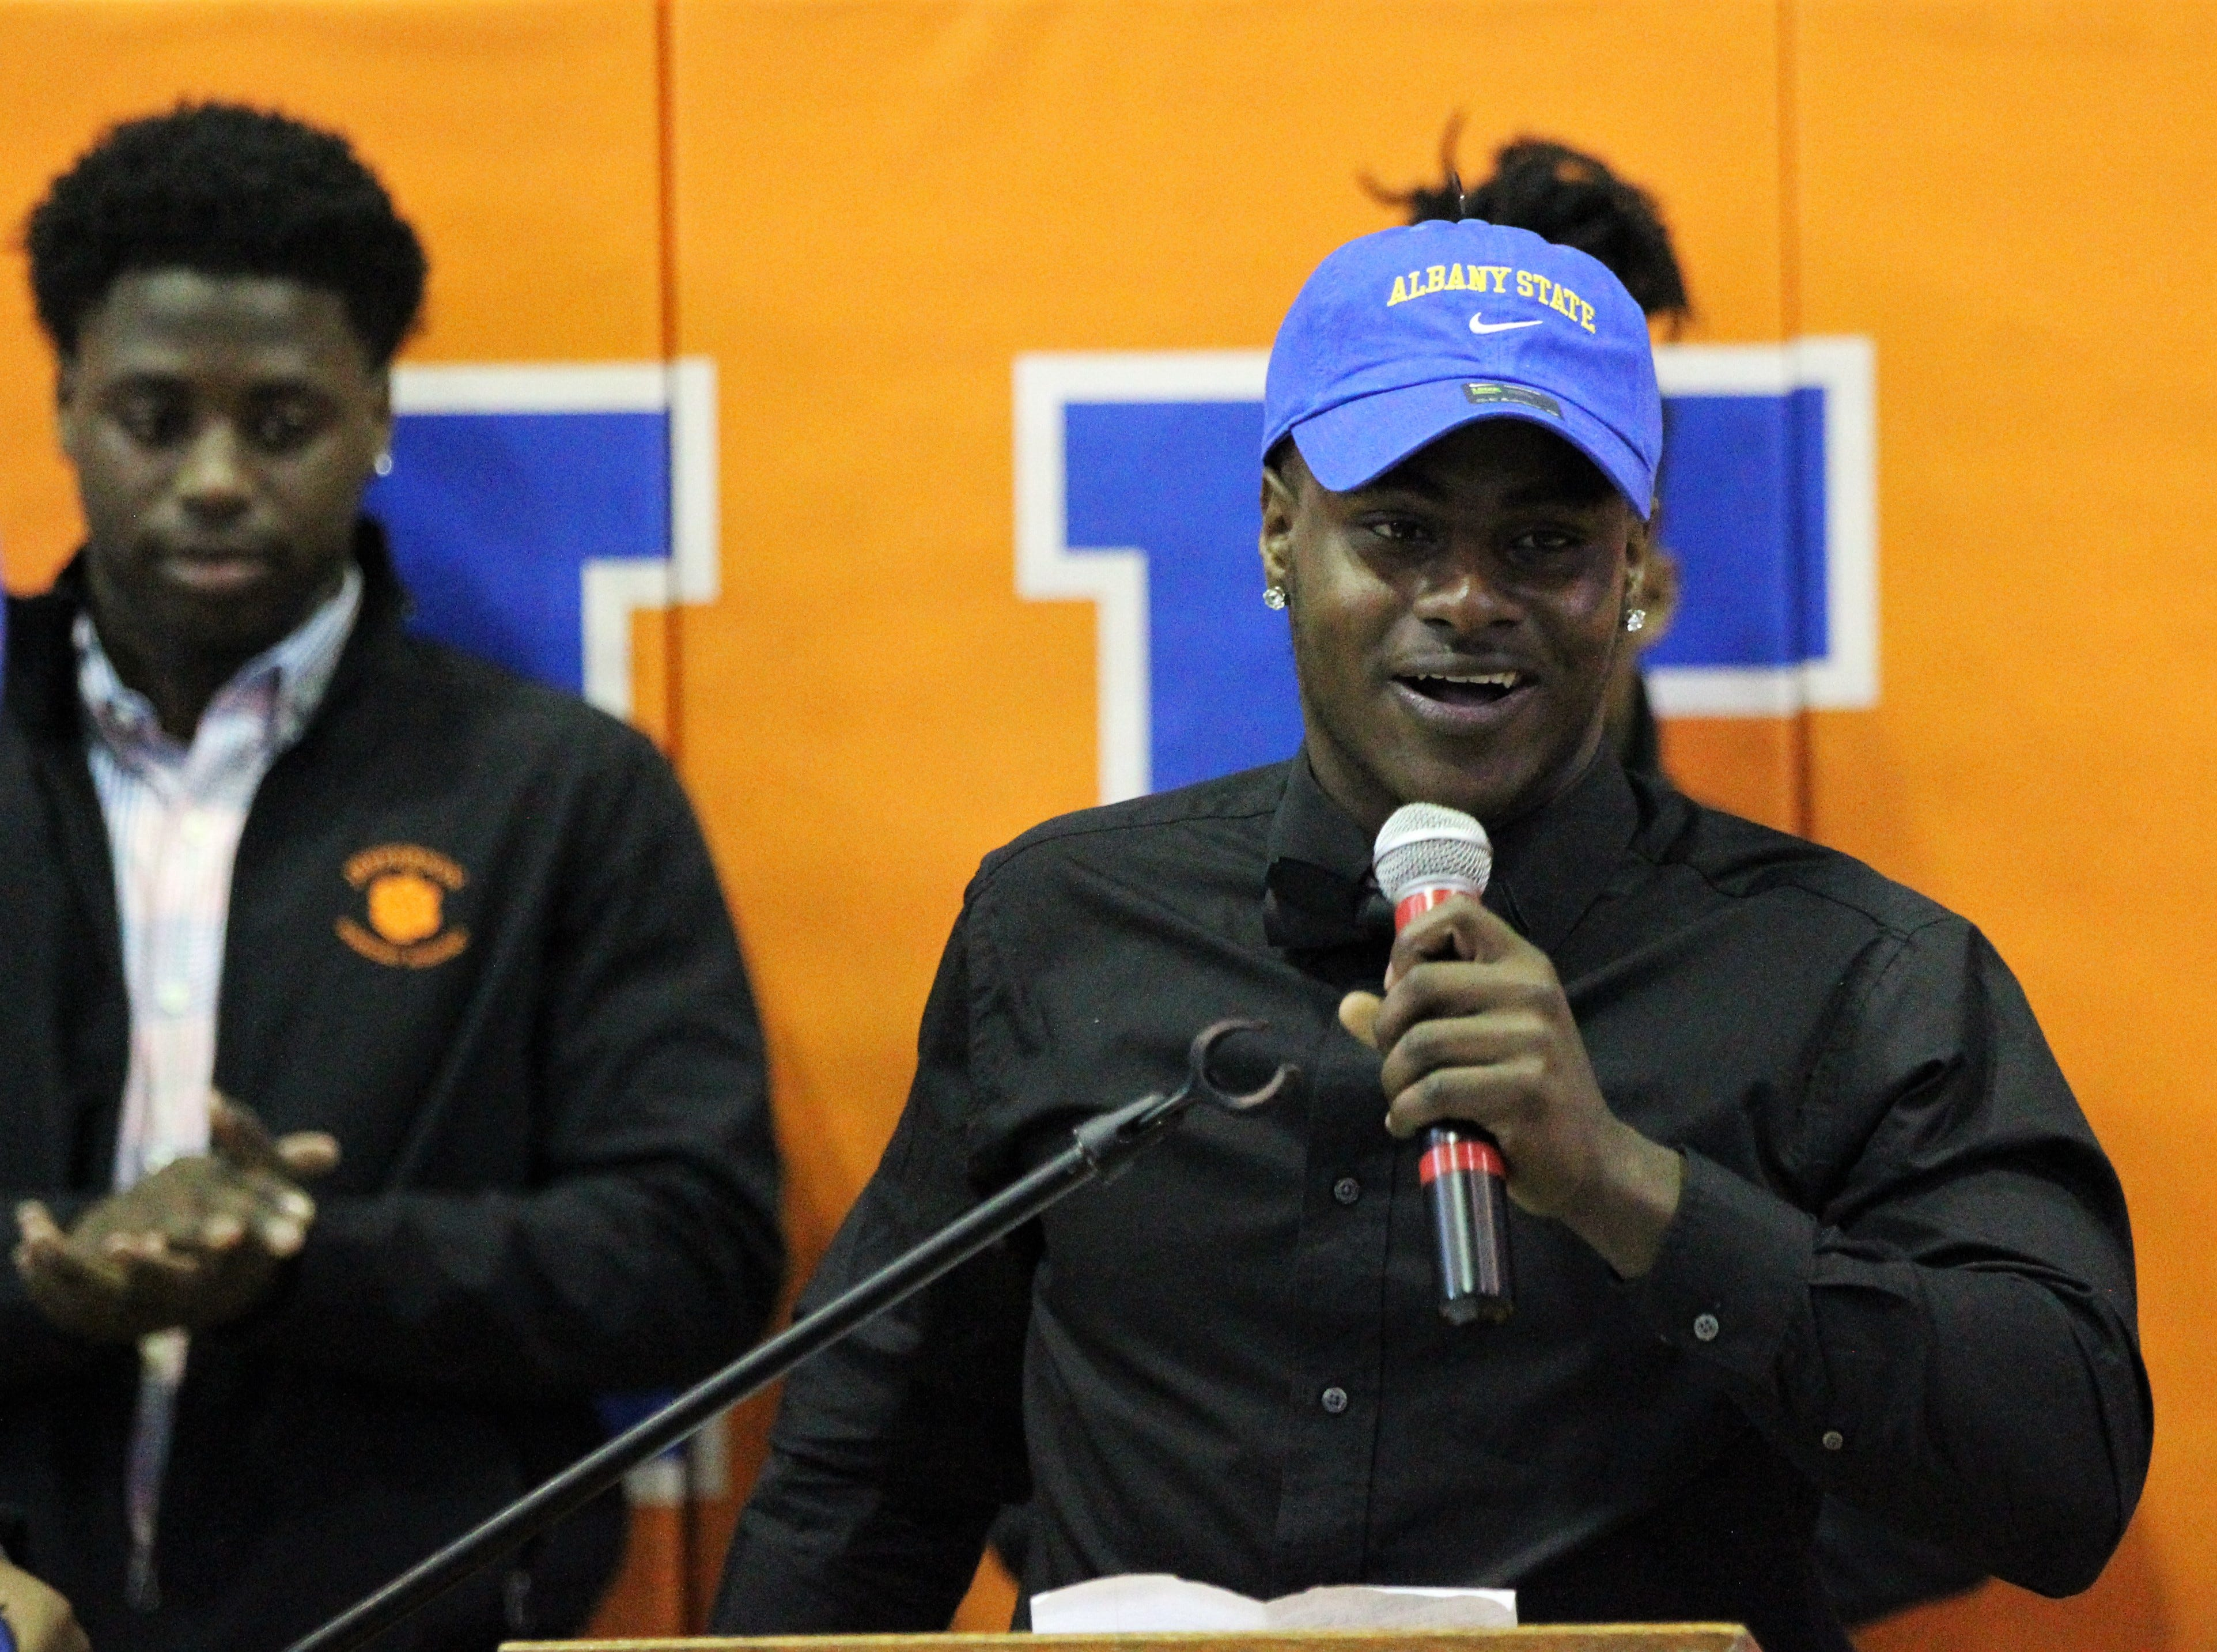 Jefferson County defensive back Zhkyi Price, who signed with Albany State, talks during Jefferson County's signing day ceremony on Feb. 13, 2019.